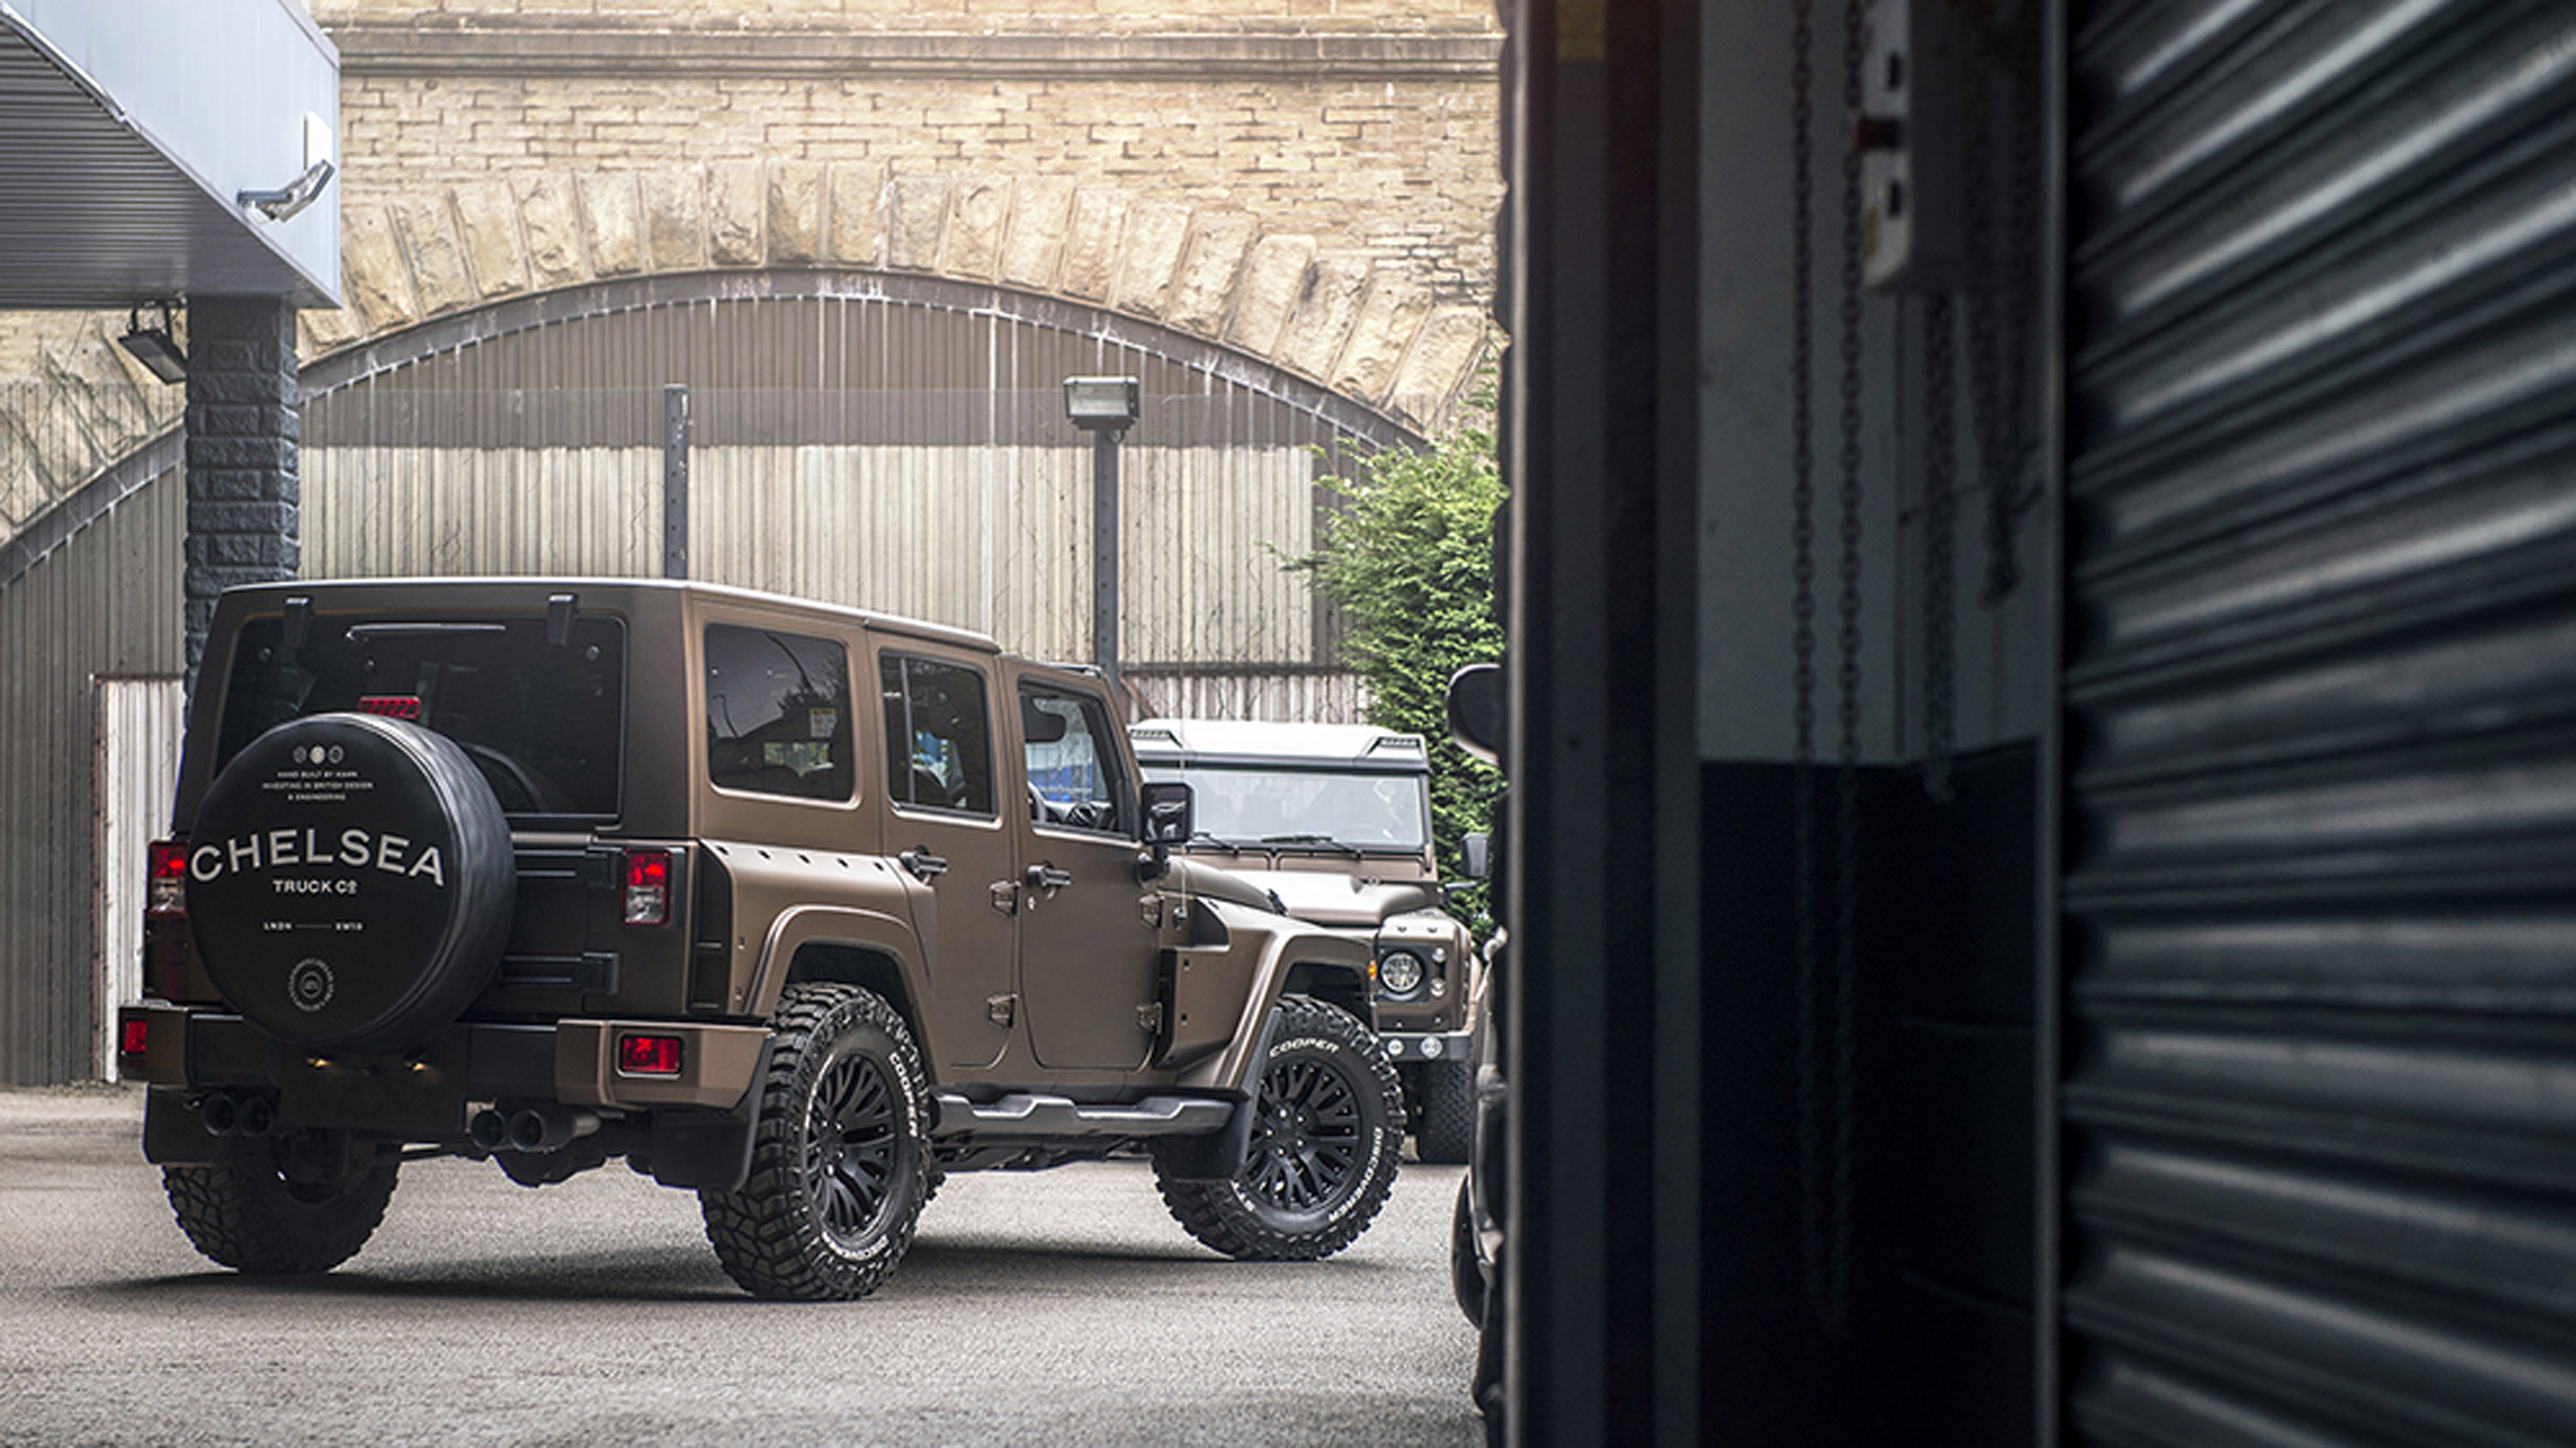 Black Hawk Jeep Wrangler By Chelsea Truck Co further Sagging Sill Plate Over Window as well Jeep Cherokee Sageland Design Concept Front Three Quarters besides Matte Grey Jeep Wrangler furthermore Katz L Je. on jeep wrangler door sill plates